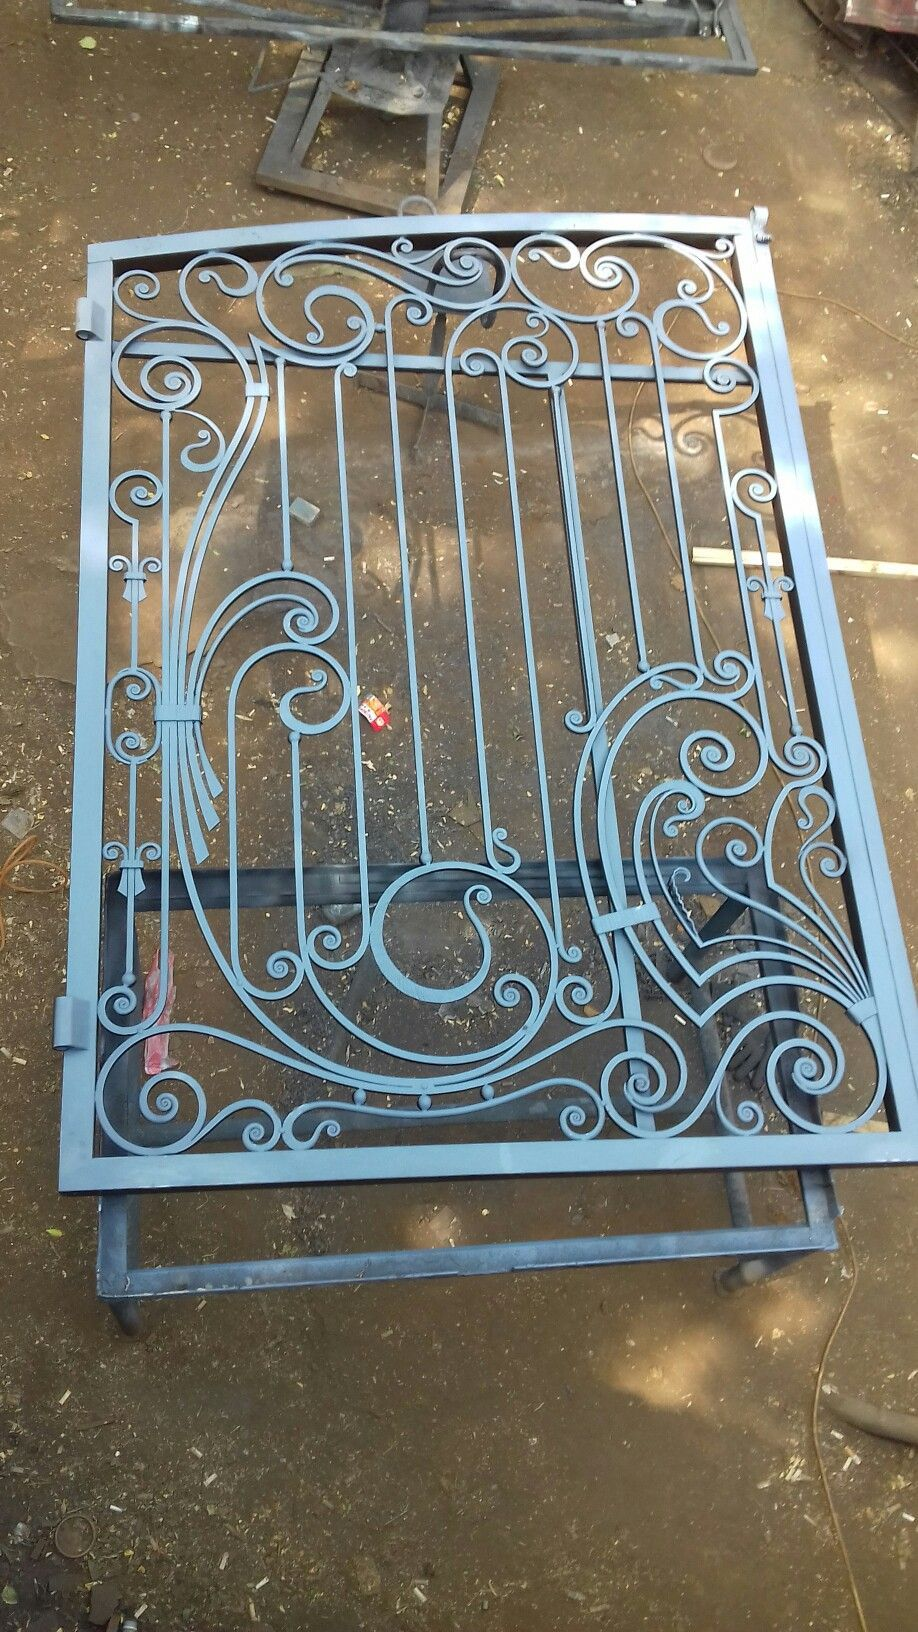 5 Grand Tips And Tricks Fence Photography Paths Fence Design Cedar Fence With Wire Metal Fence Gate Pool Fence Wrought Iron Gates Iron Decor Door Gate Design